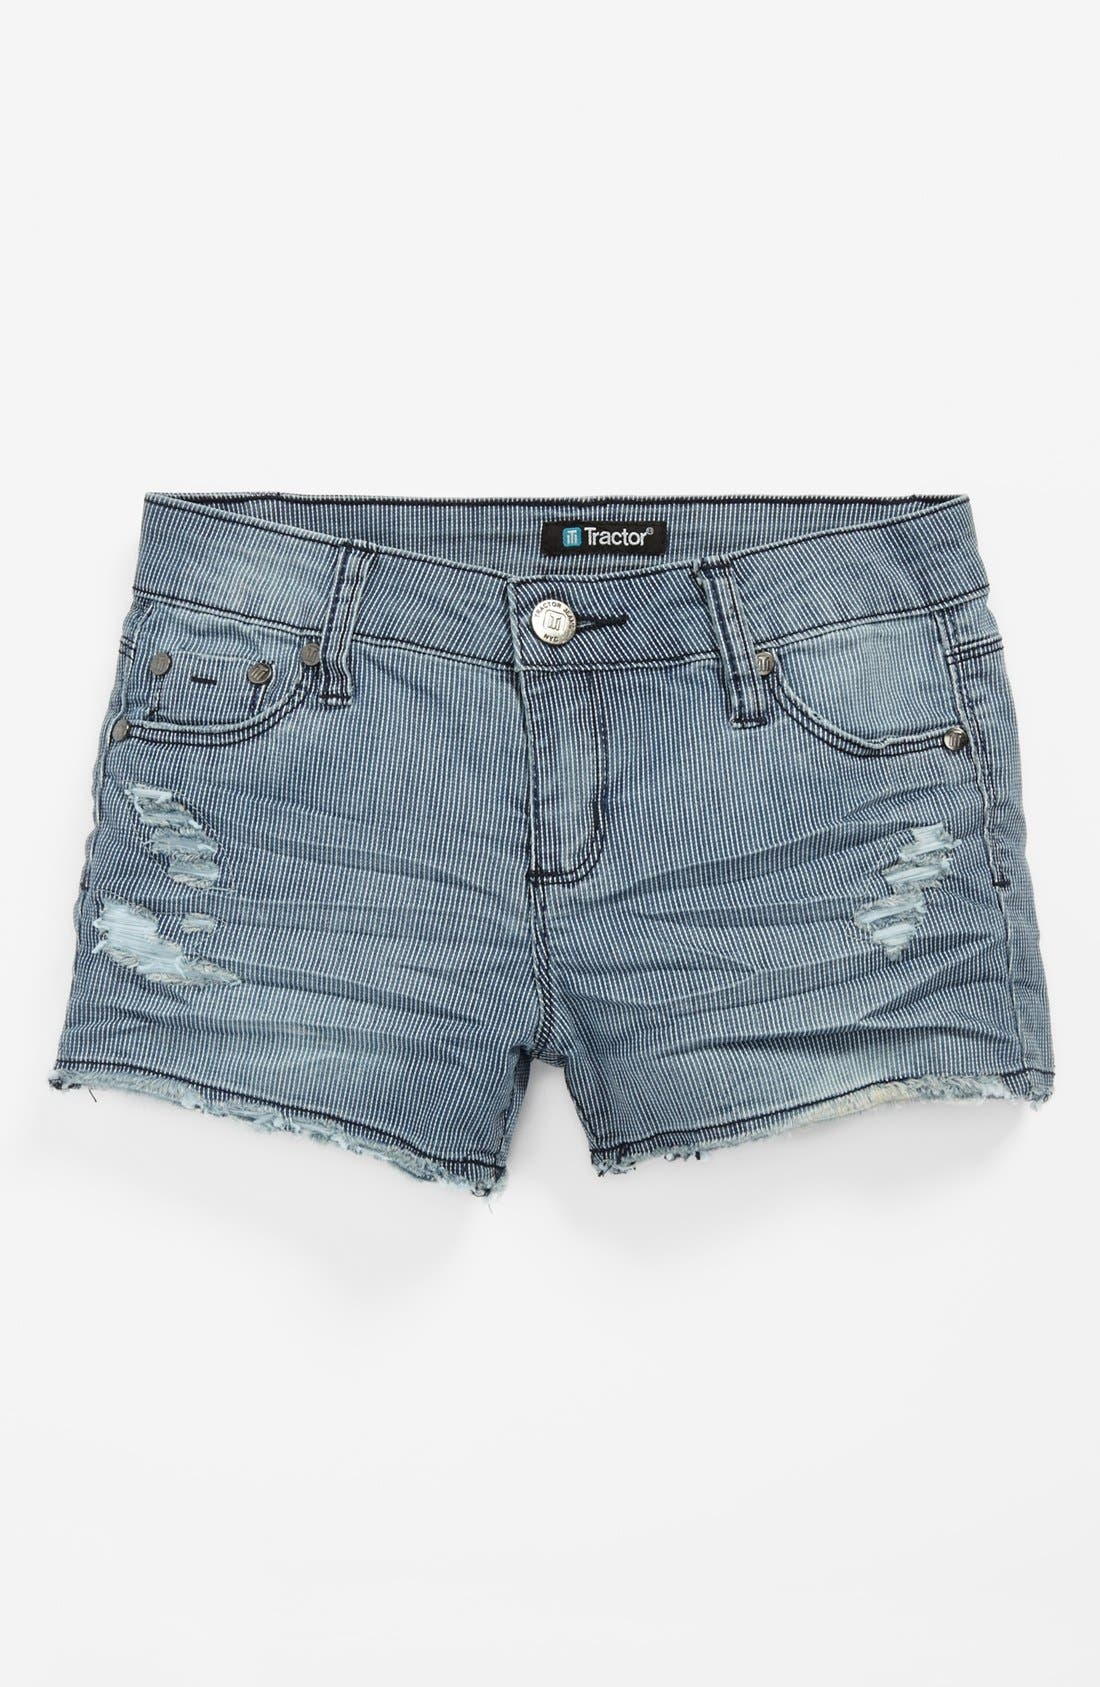 Alternate Image 1 Selected - Tractr Railroad Shorts (Big Girls)